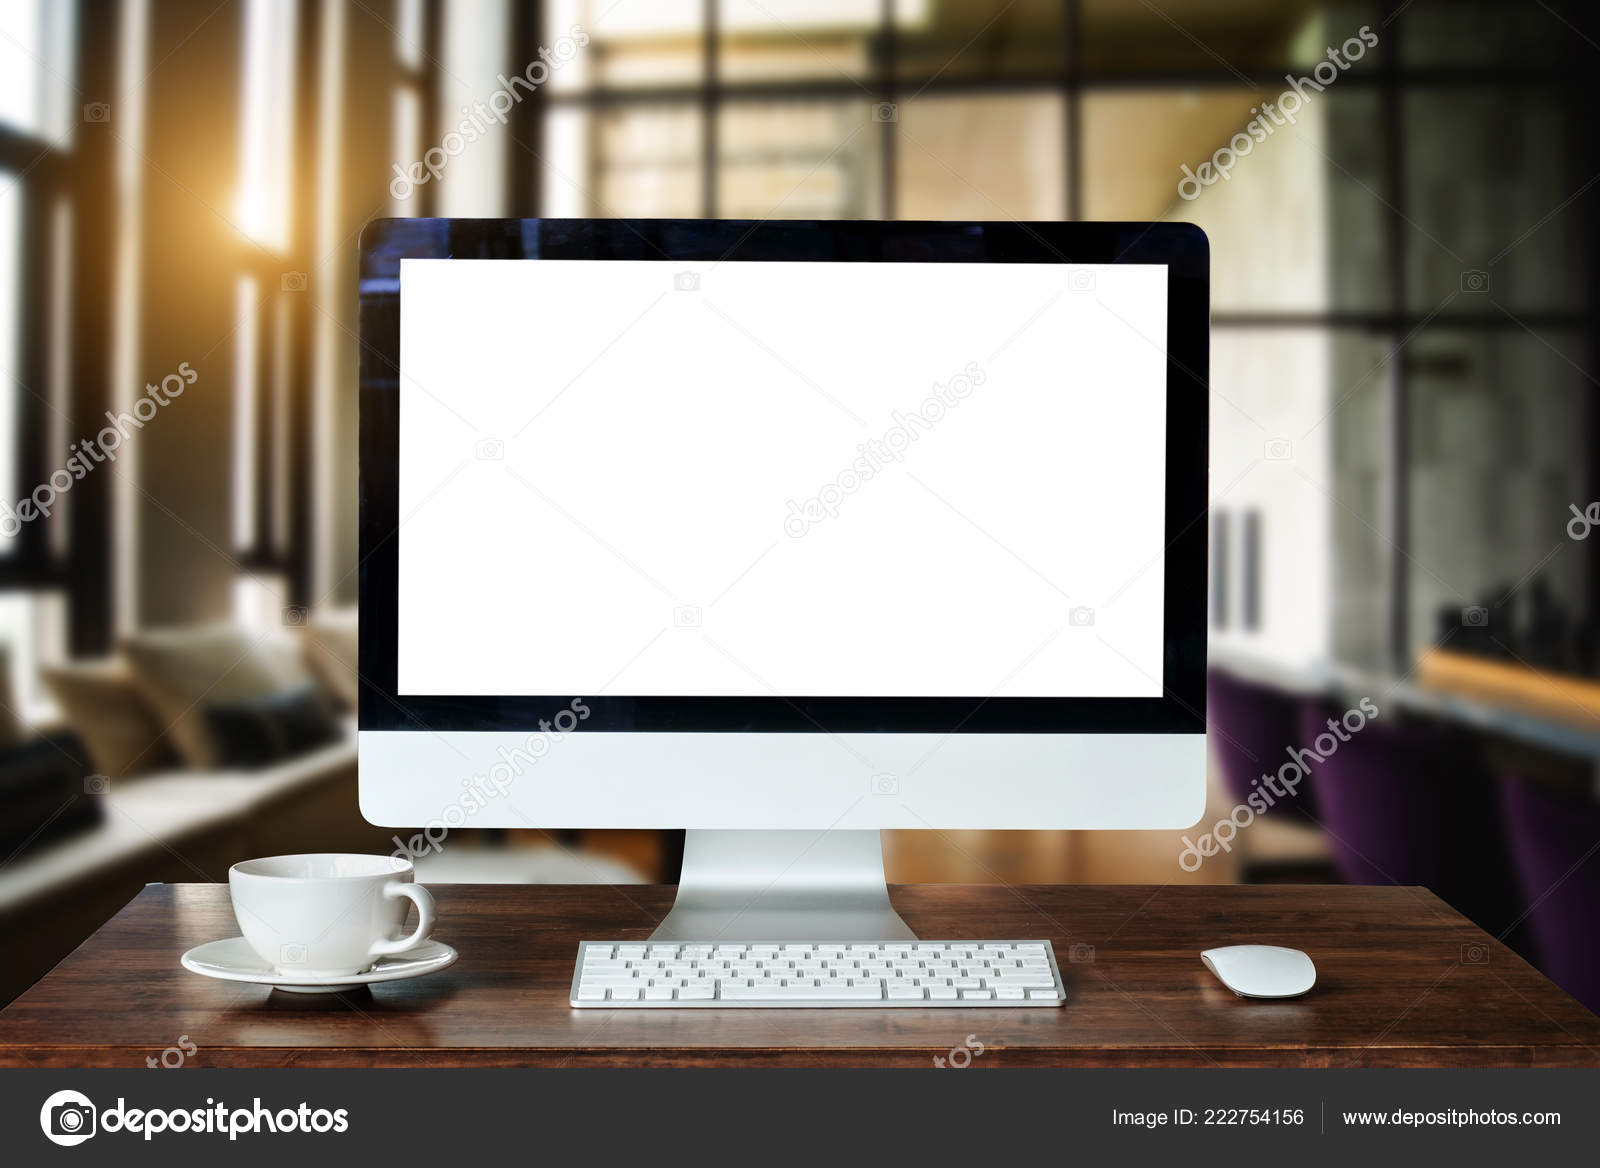 Workspace with computer Monitor, Keyboard, blank screen coffee cup  smartphone, and tablet on a table or White Screen Isolated in bright office  room ...